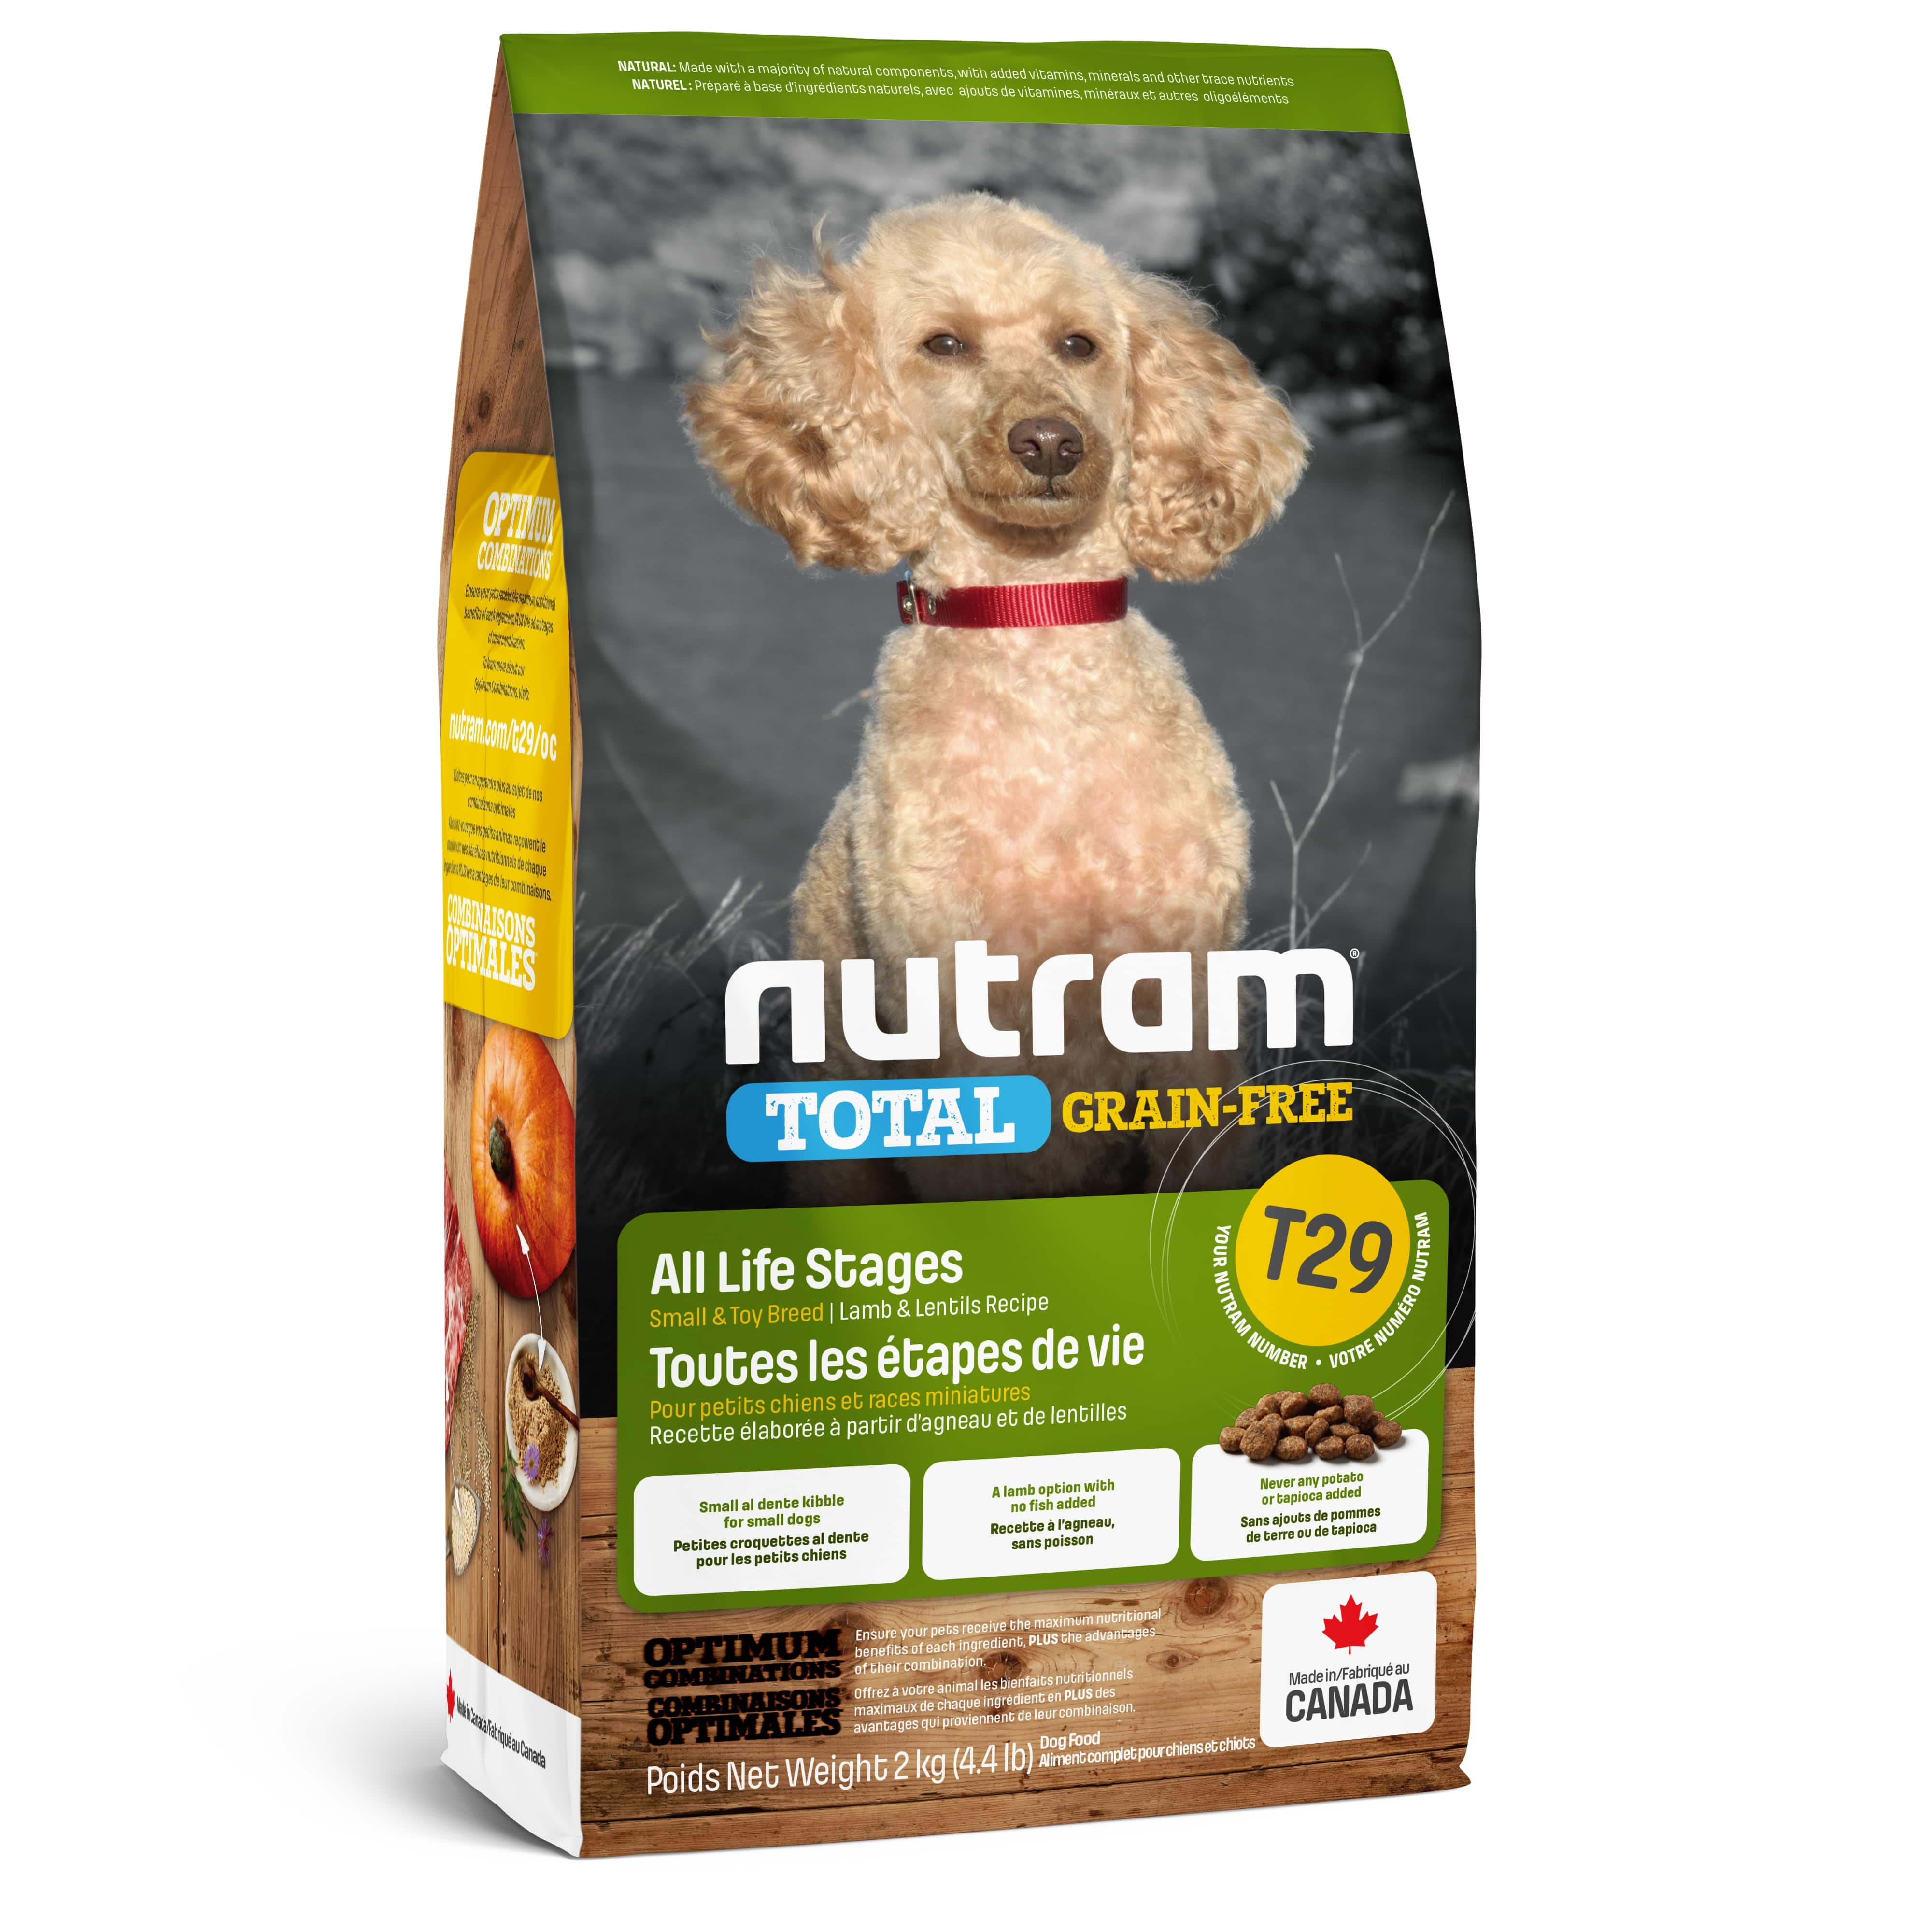 T29 Nutram Total Grain-Free® Lamb and Lentils Recipe Dog Food